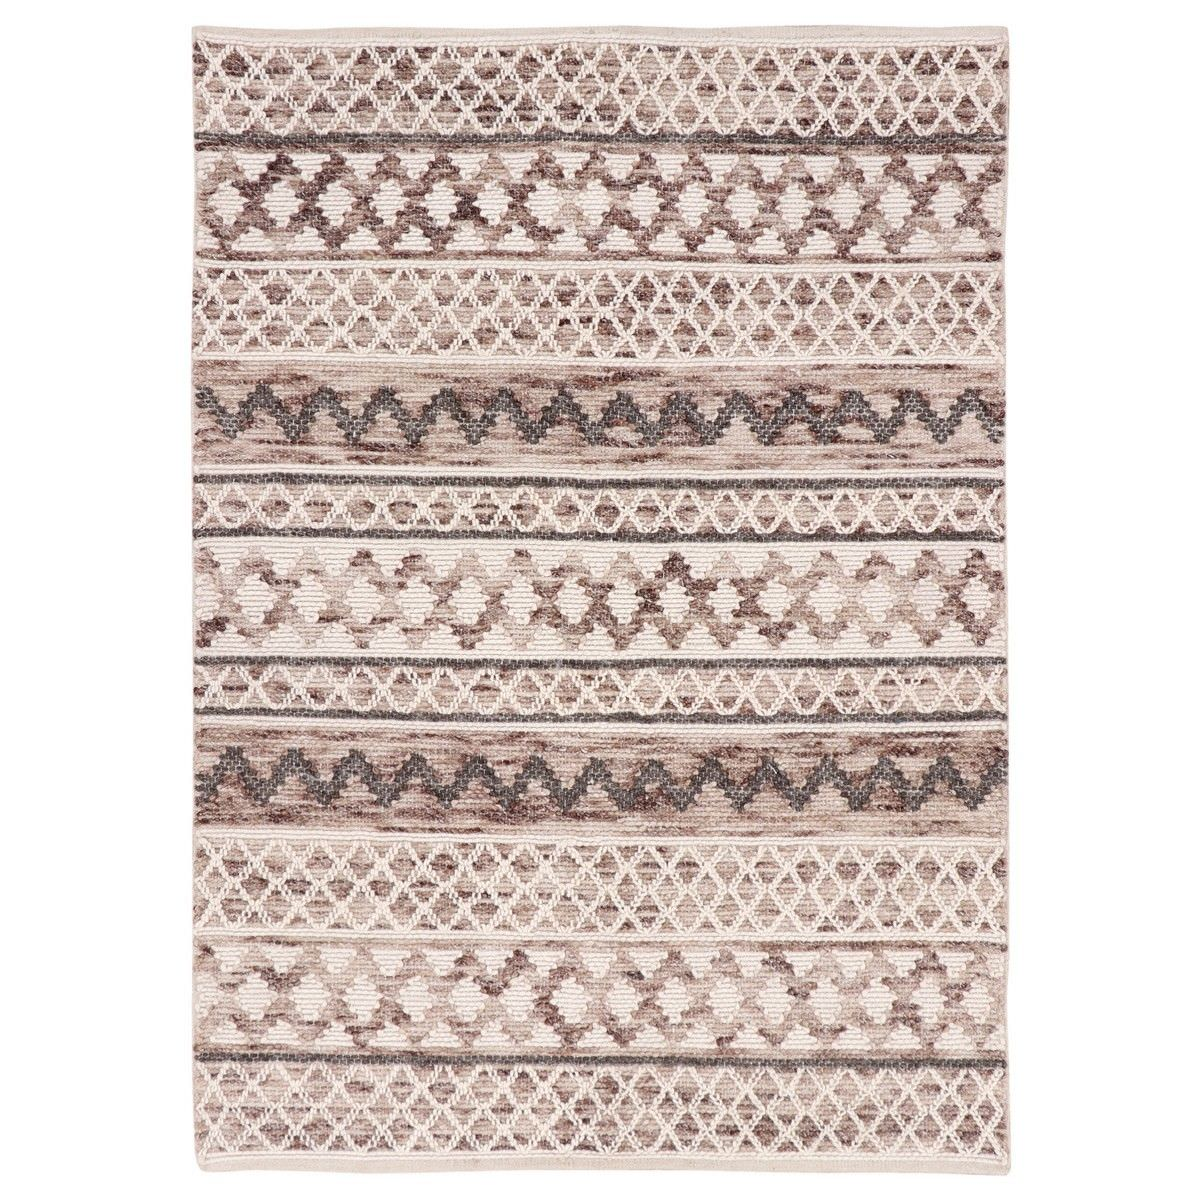 Omen Handwoven Wool Rug, 230x160cm, Ivory / Brown